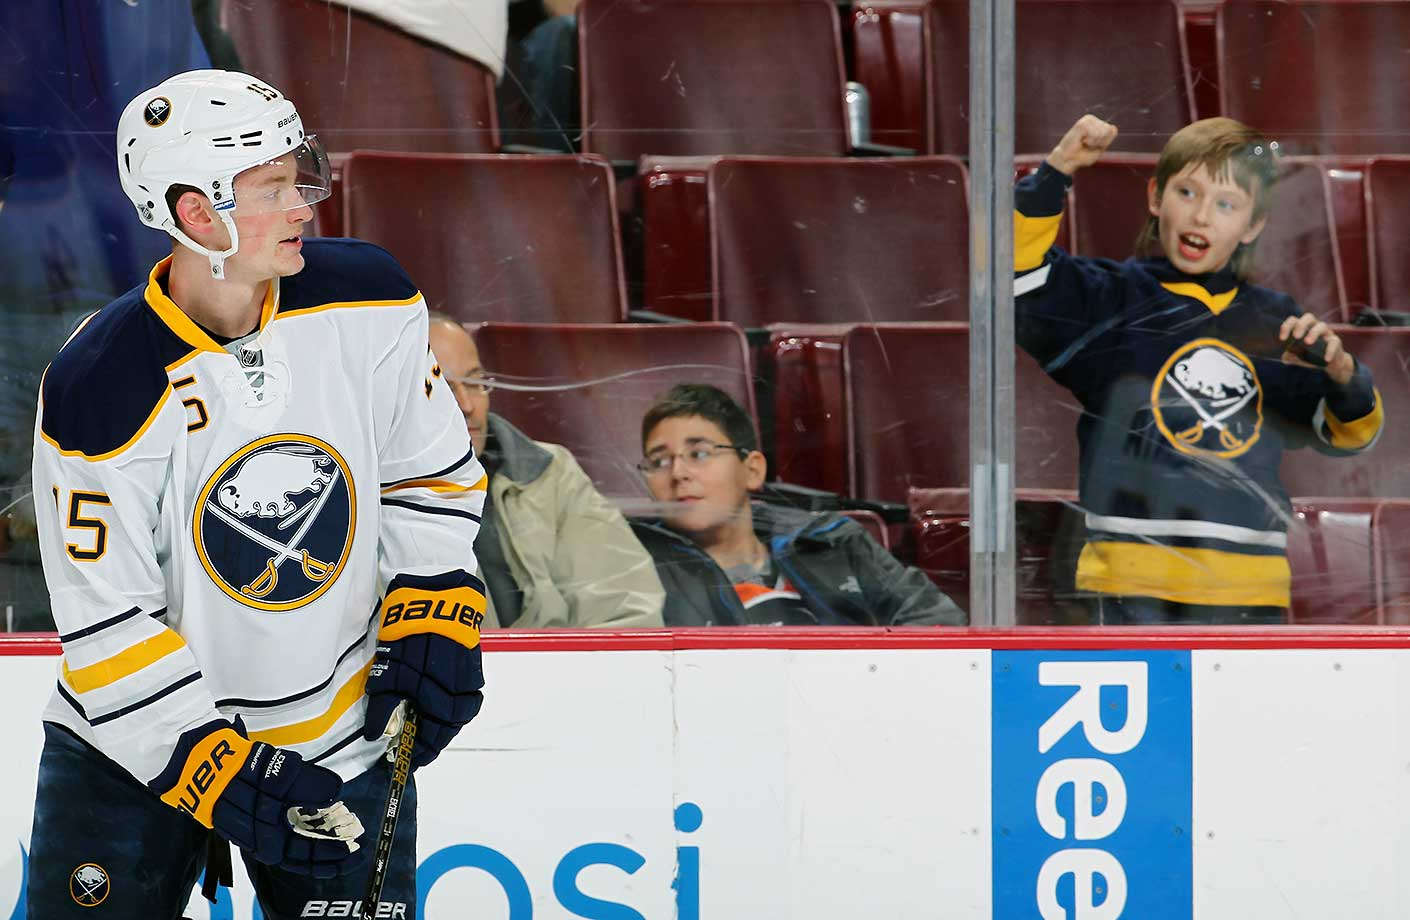 A fan reacts after receiving a puck from Jack Eichel of the Buffalo Sabres during warmups.